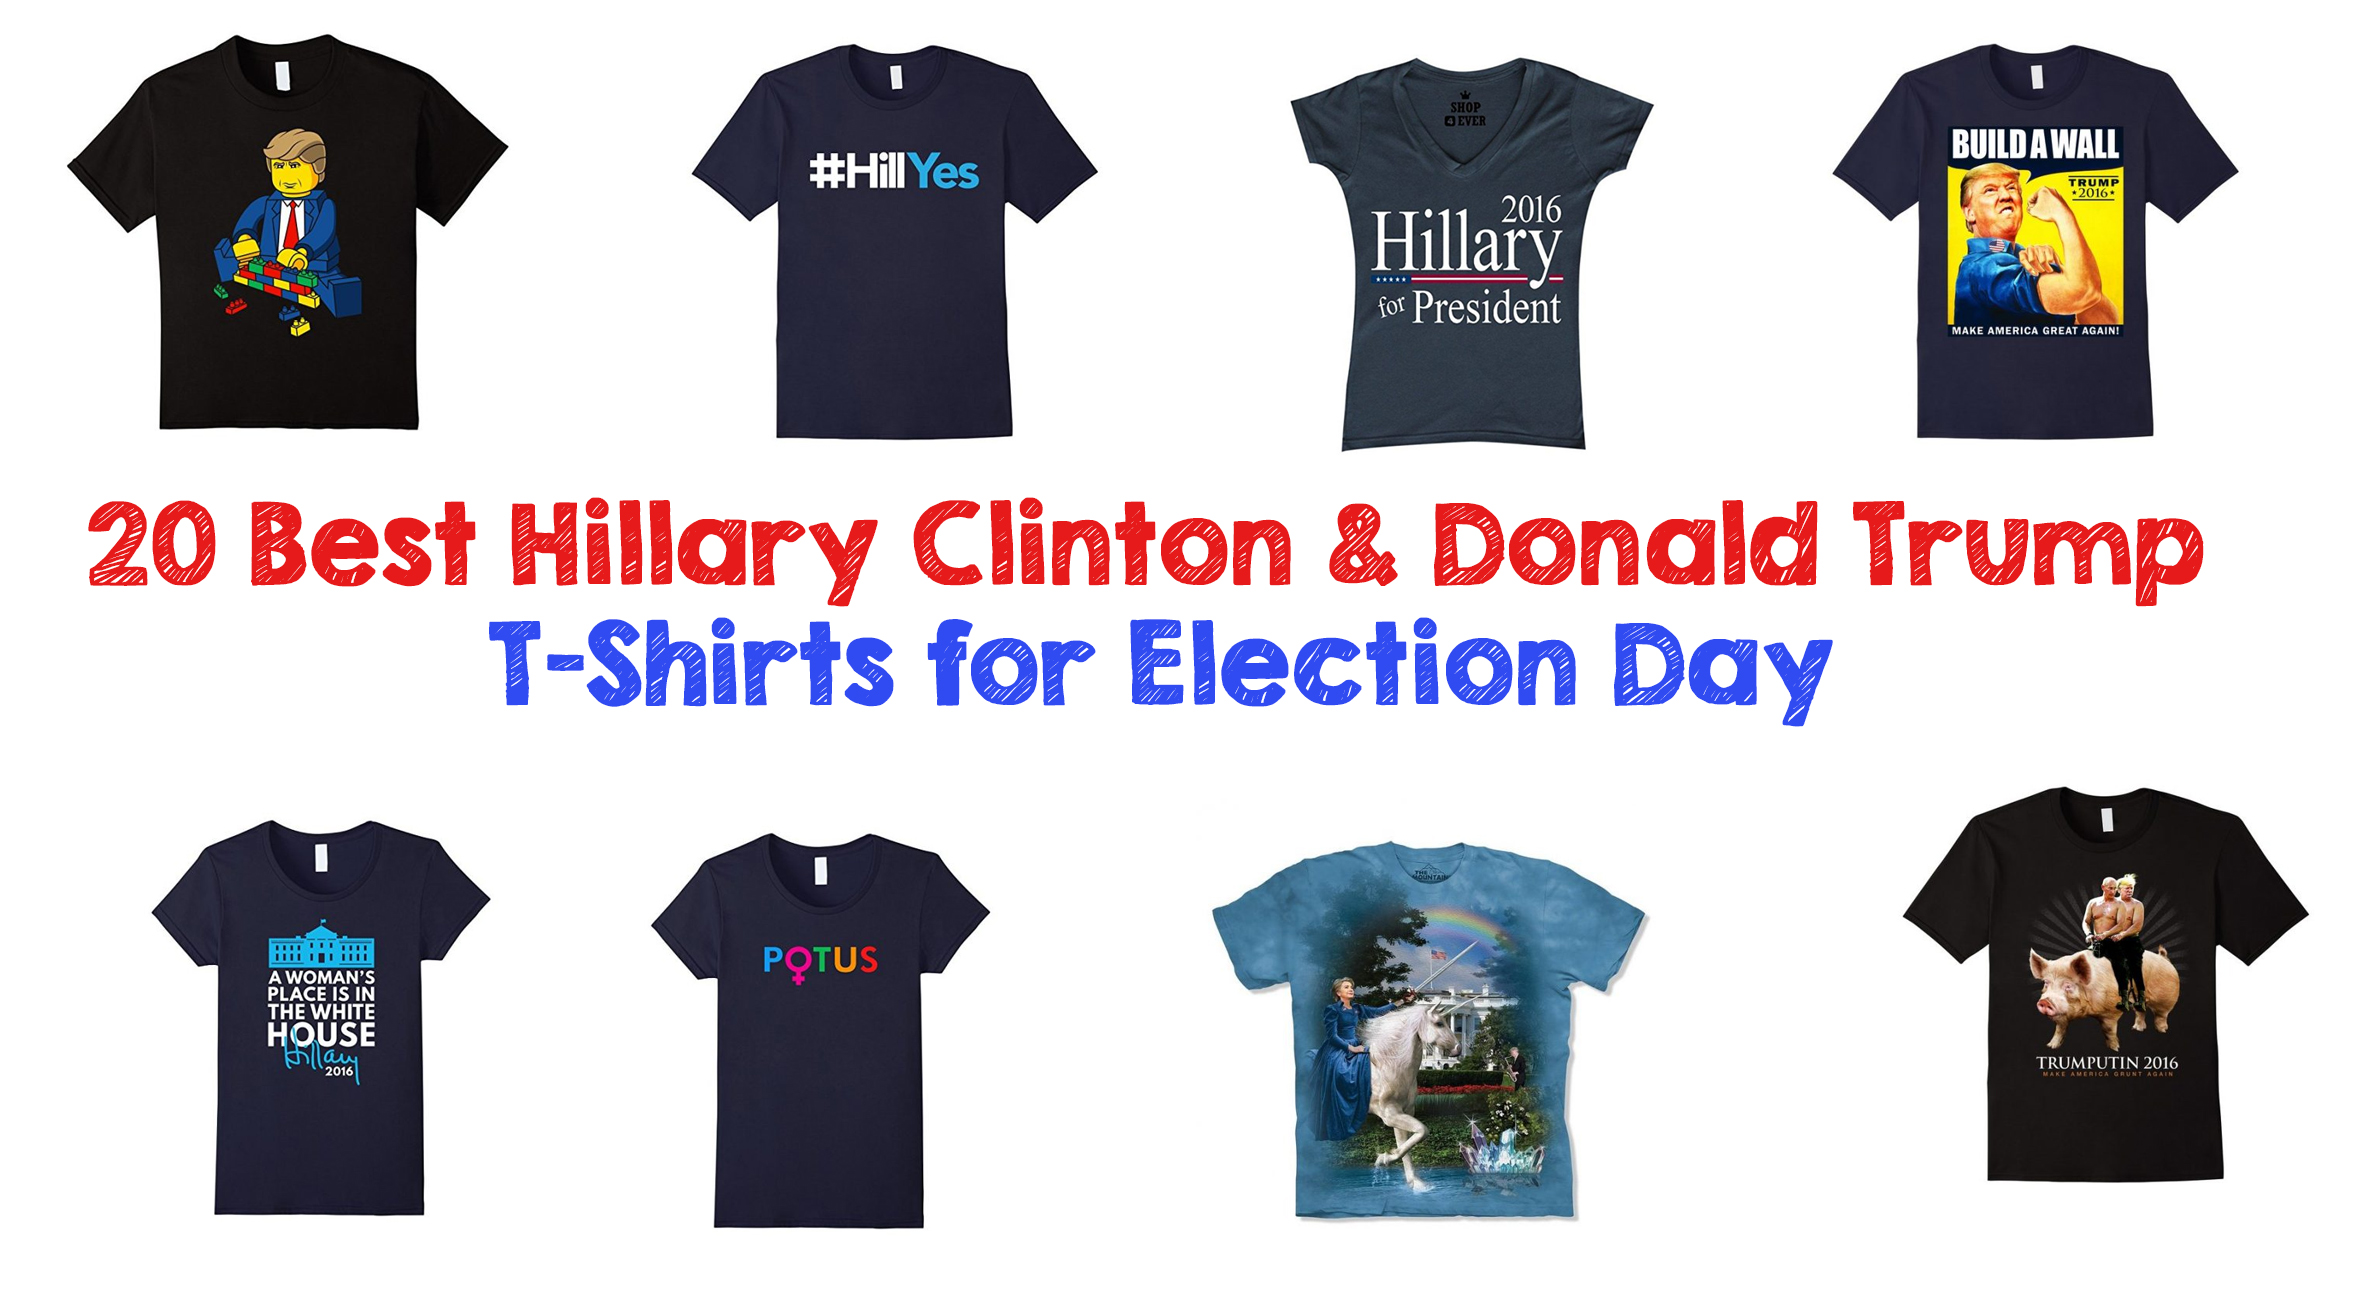 20 Best Hillary Clinton & Donald Trump T-Shirts for Election Day